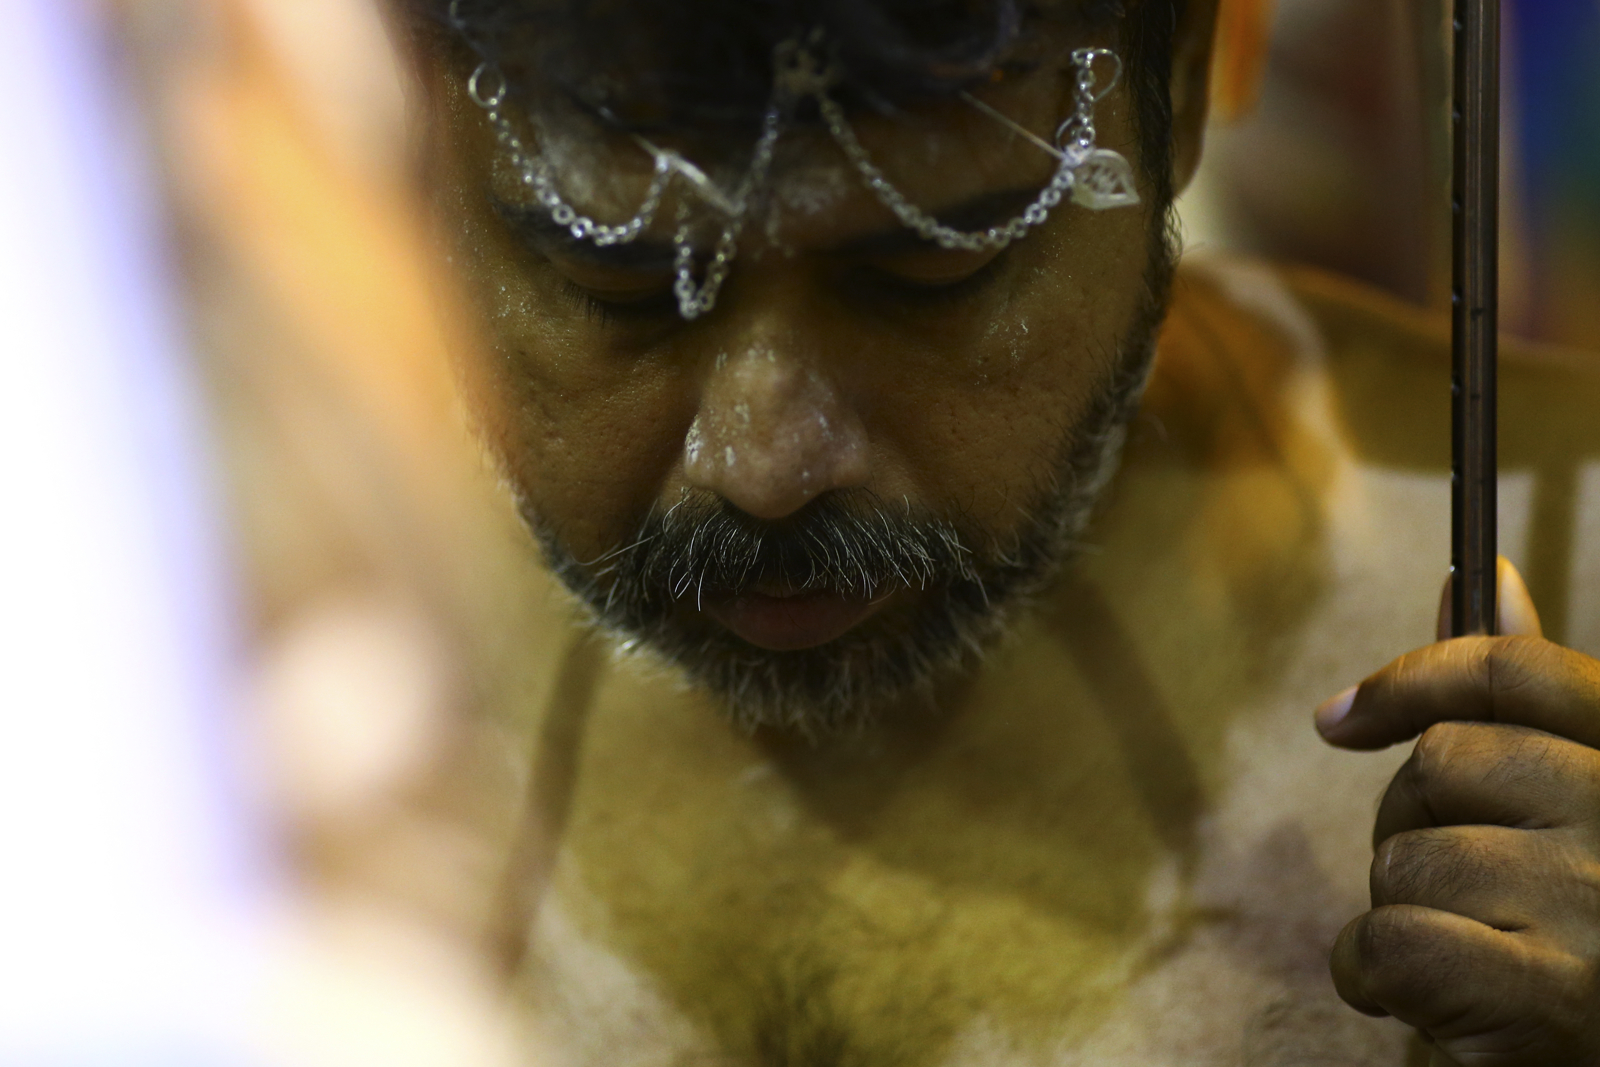 A devotee reacts as he gets his body pierced during the Thaipusam festival at the Sri Srinivasa Perumal Temple on February 9, 2017 in Singapore.